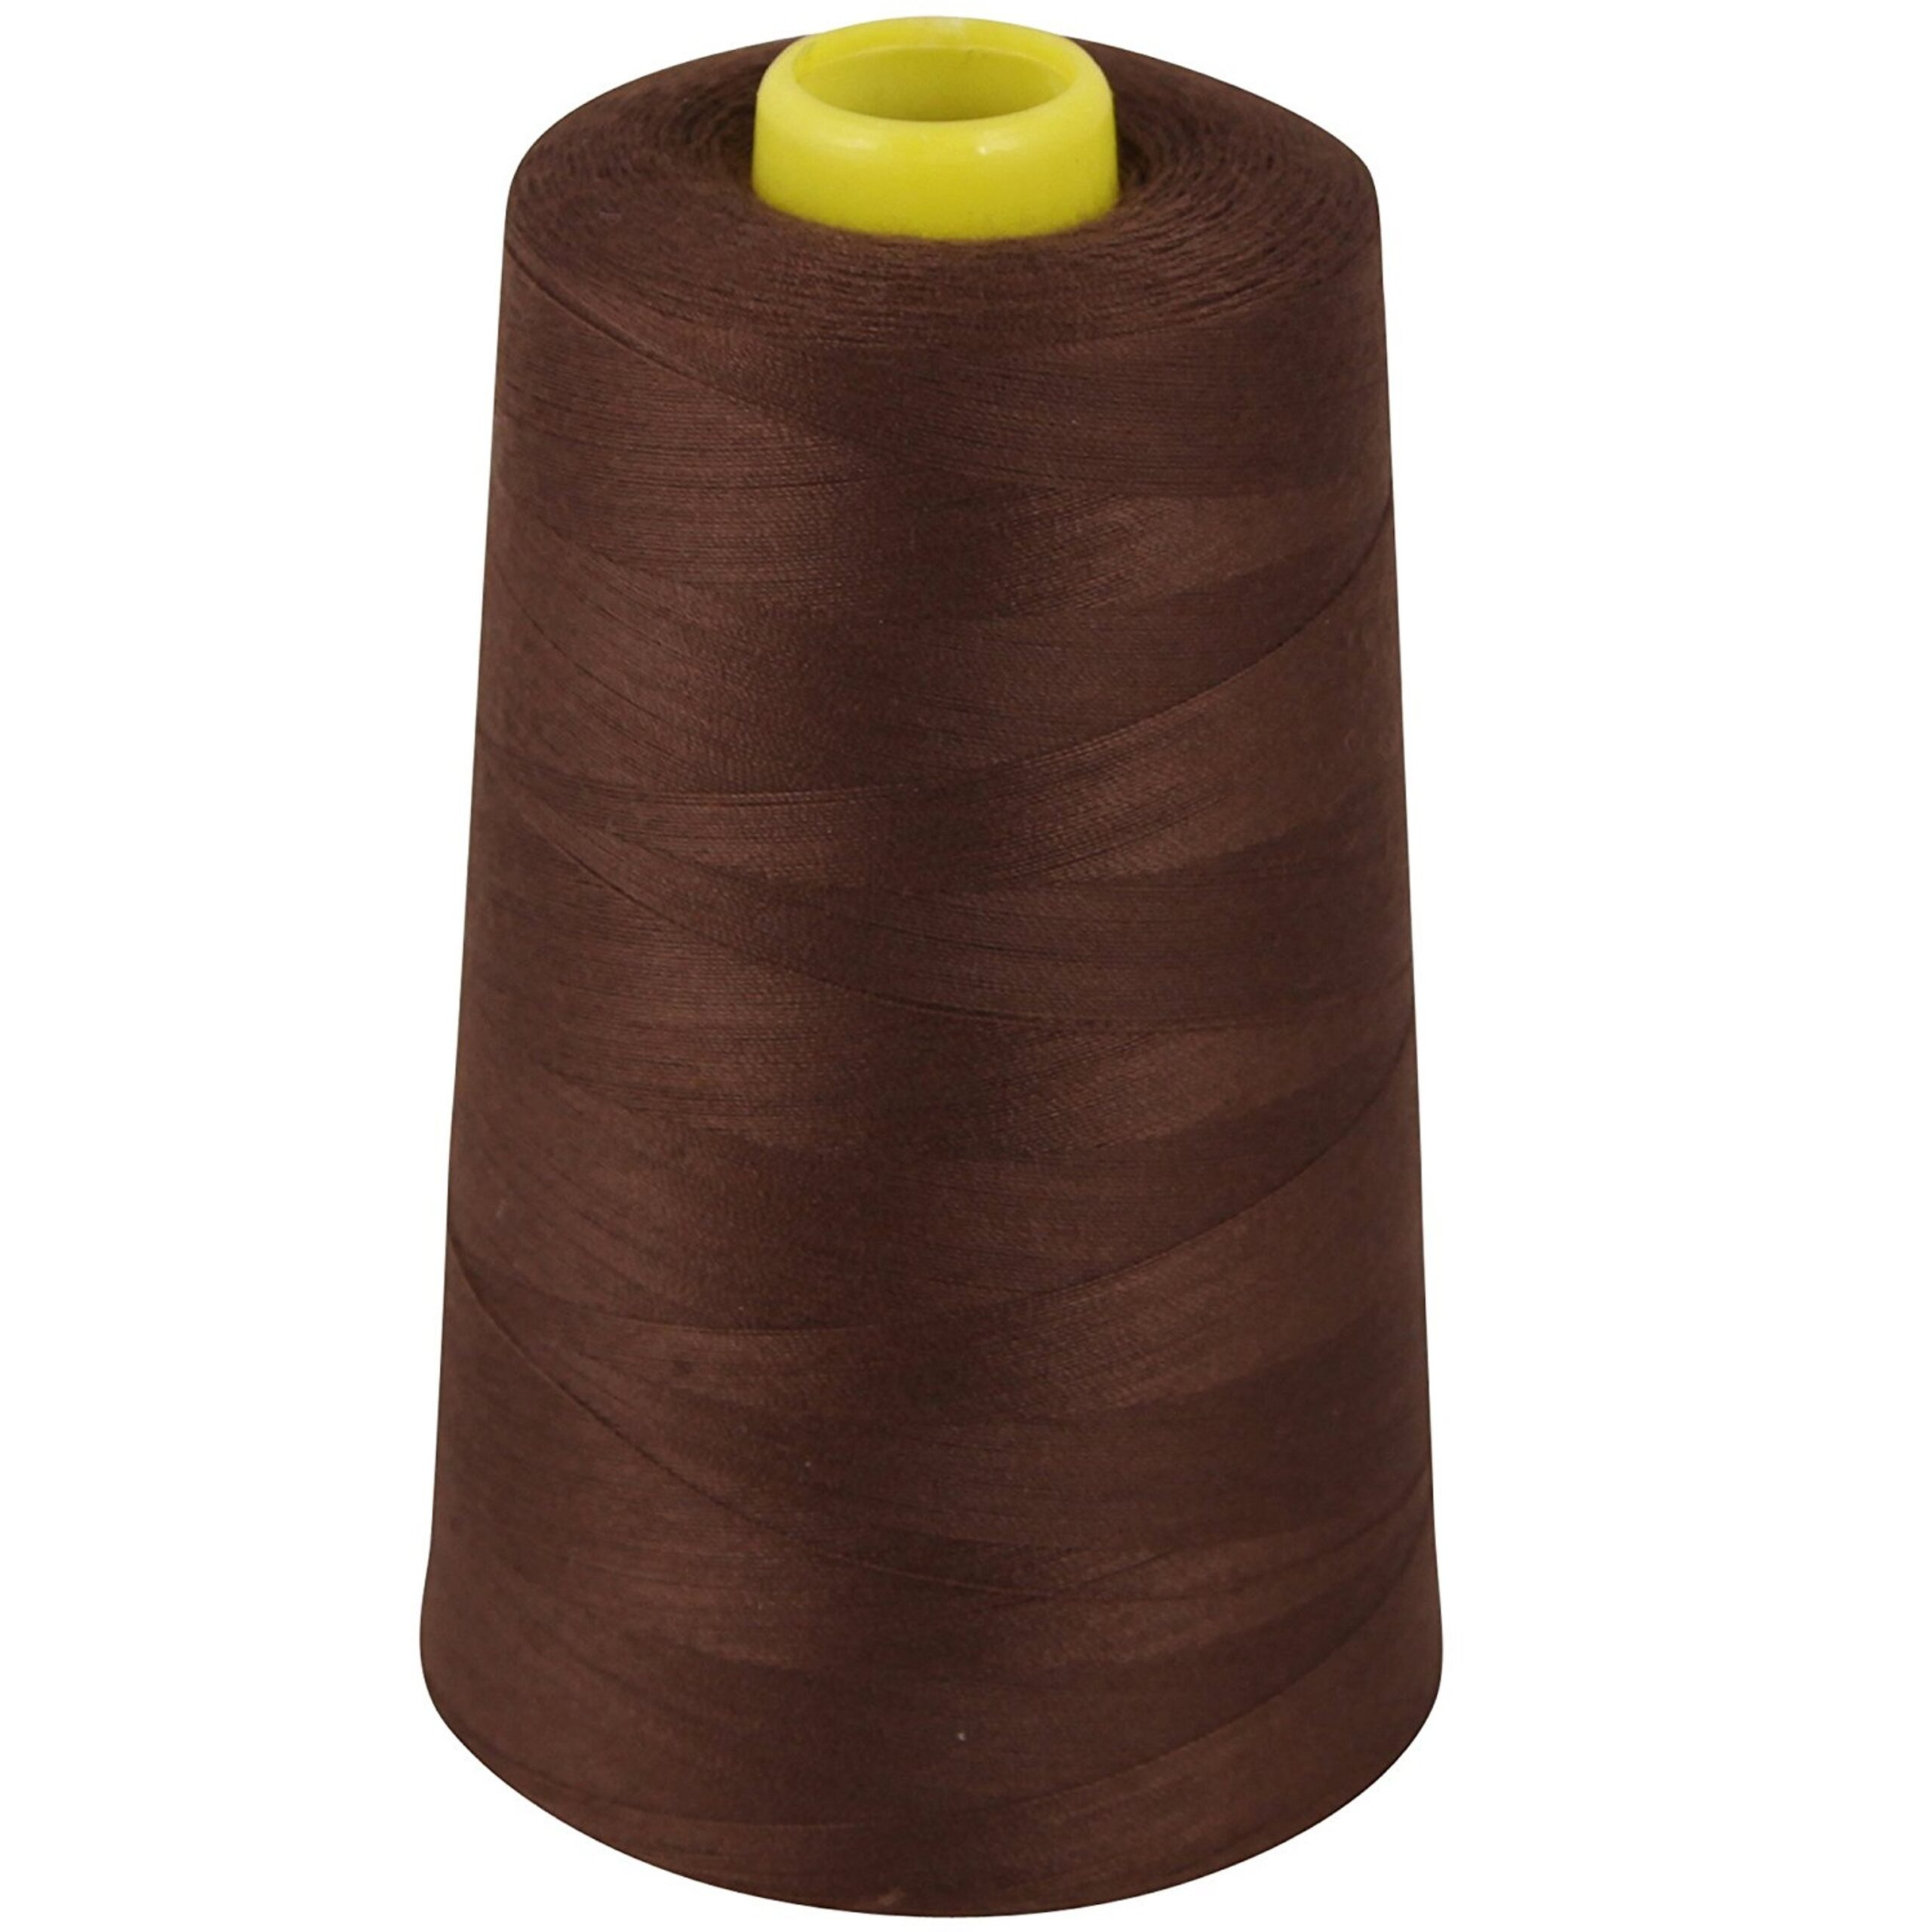 COATS Polyester – Sewing & Overlocking Threads – 5000 Meters (5468 Yard) Cones